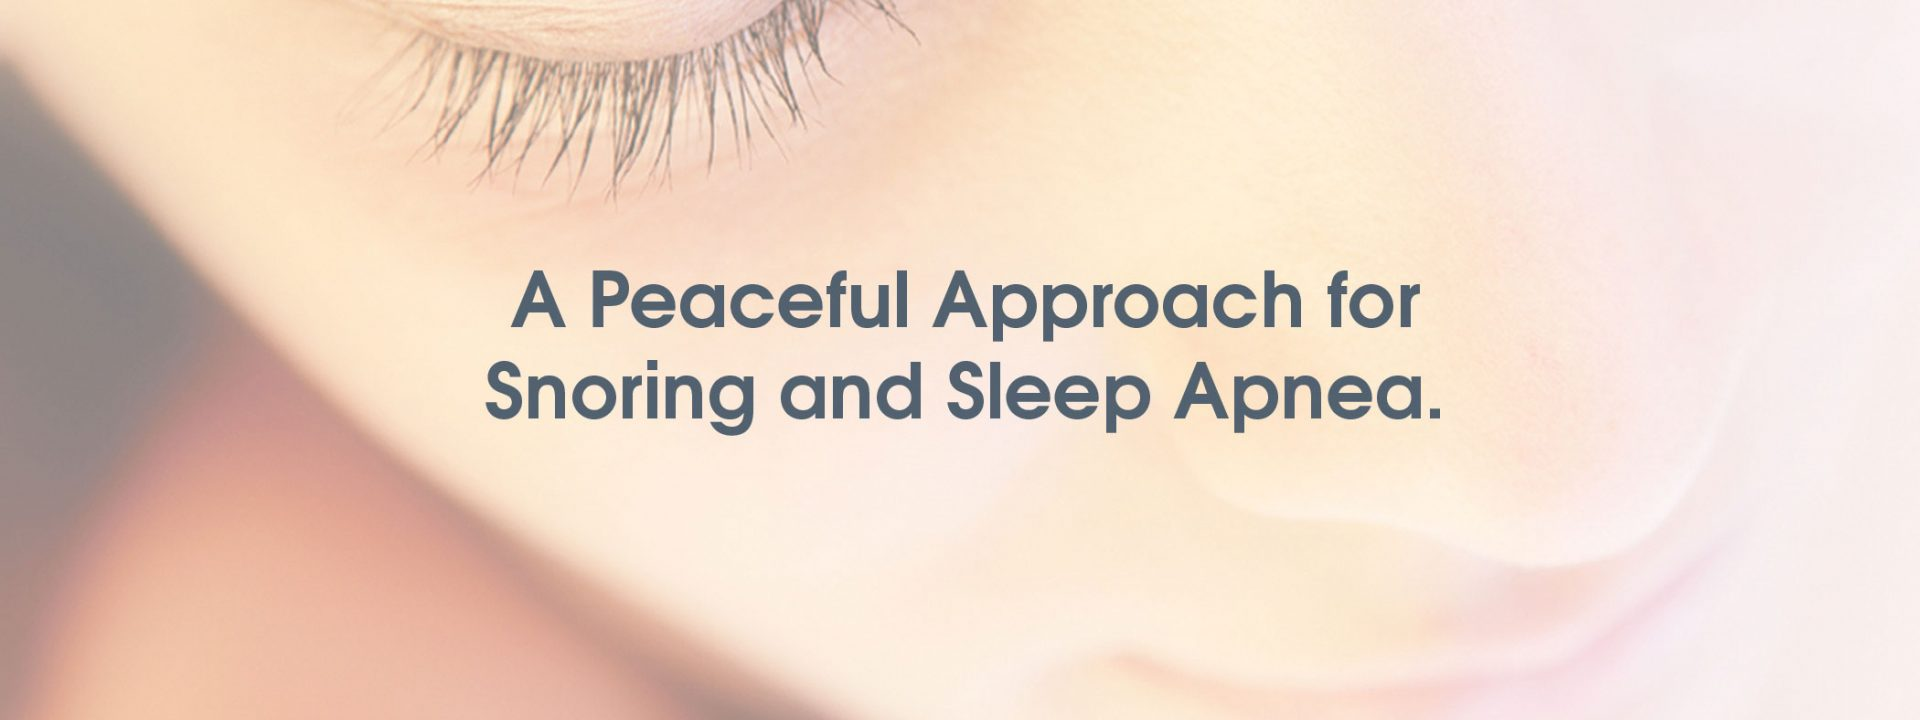 A Peaceful Approach for Snoring and Sleep Apnea